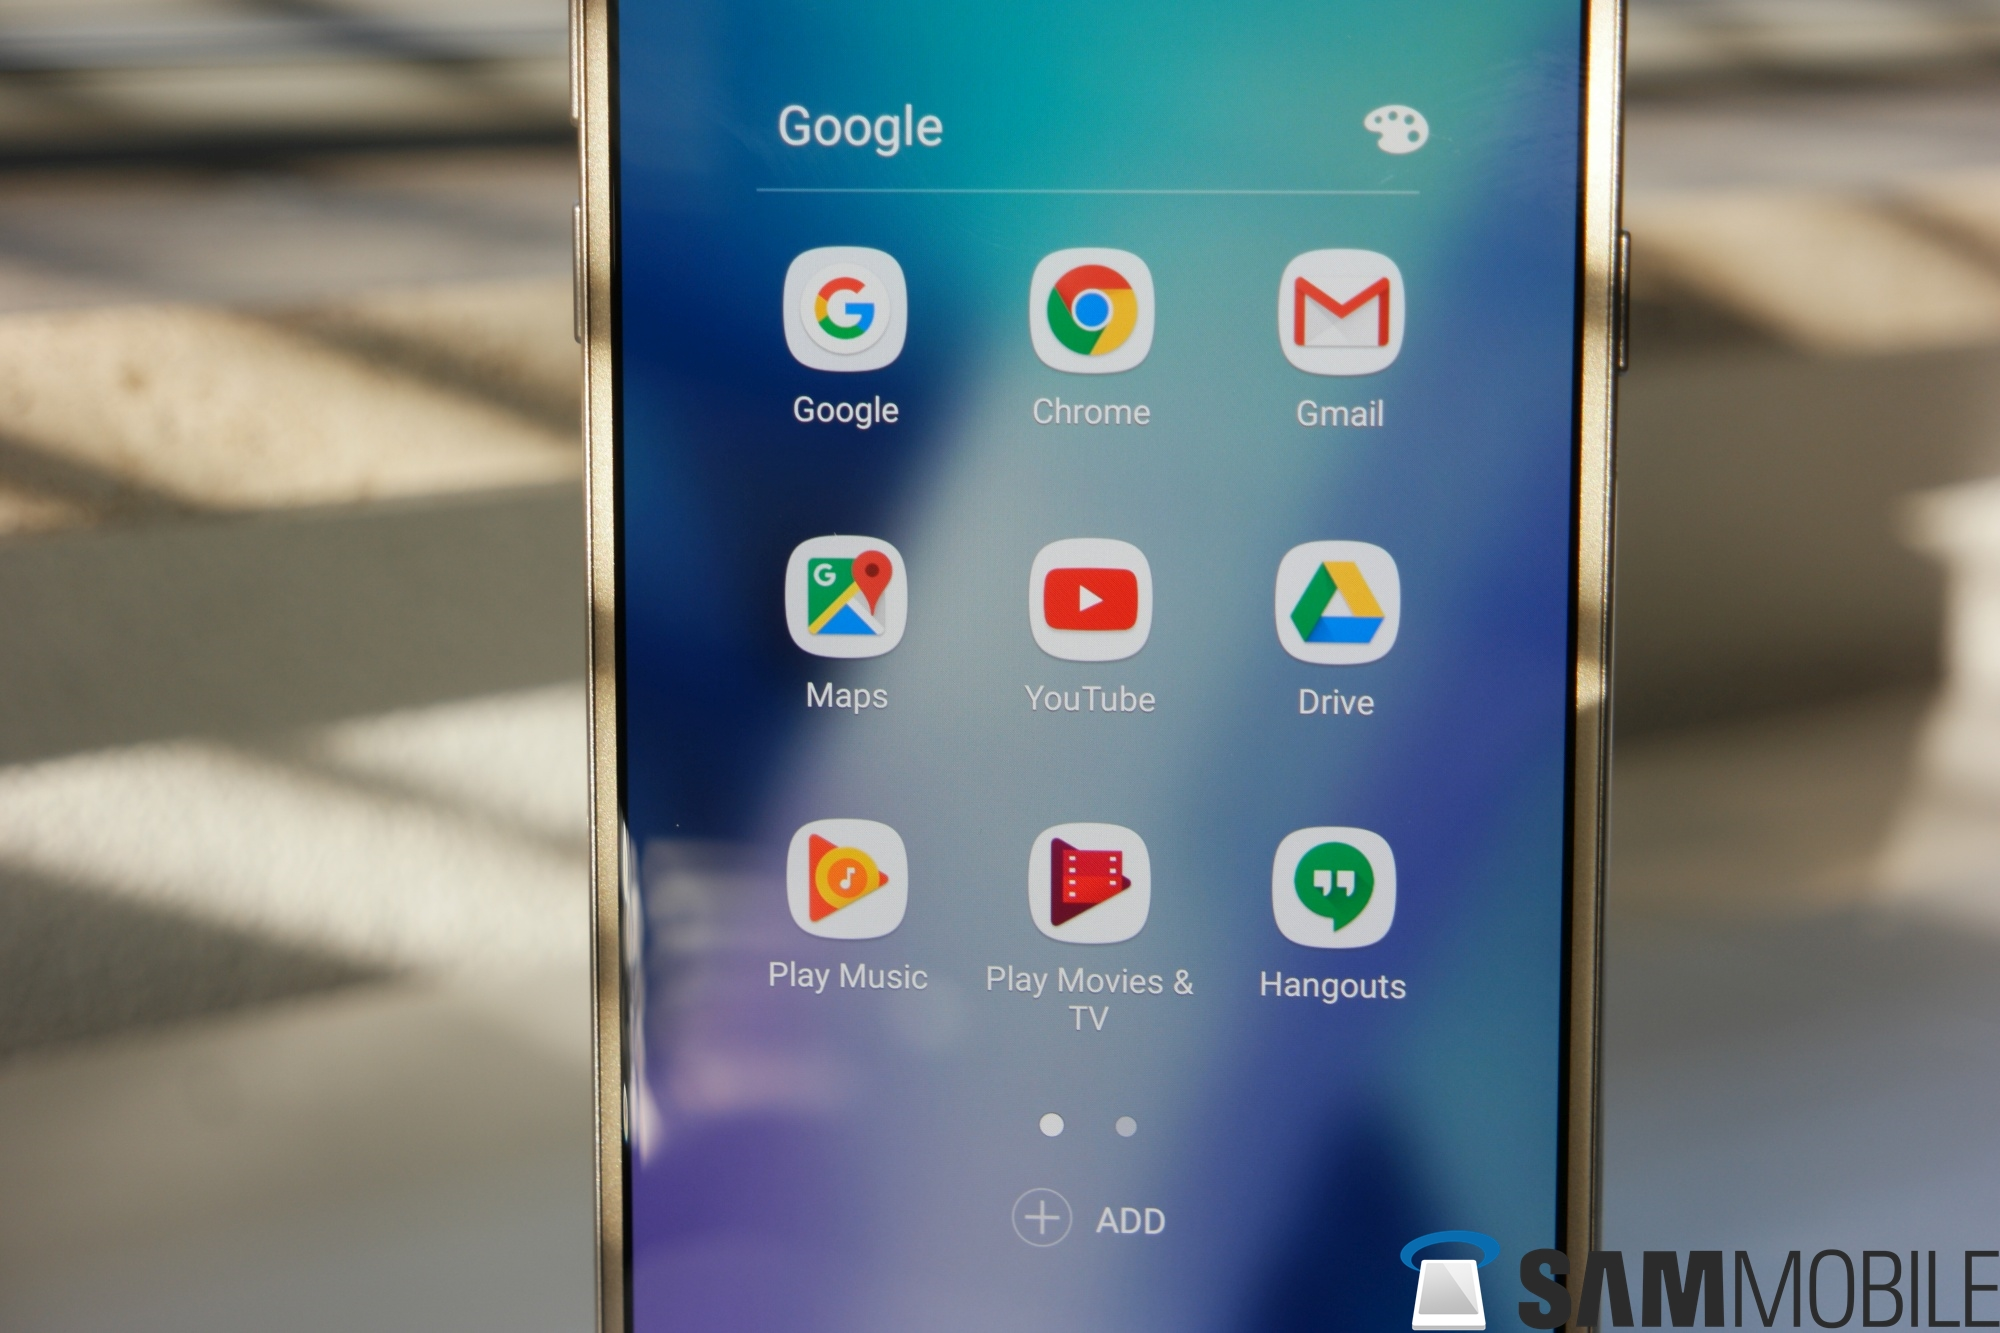 Galaxy A5 (2017) review: Samsung brings its 'A' game